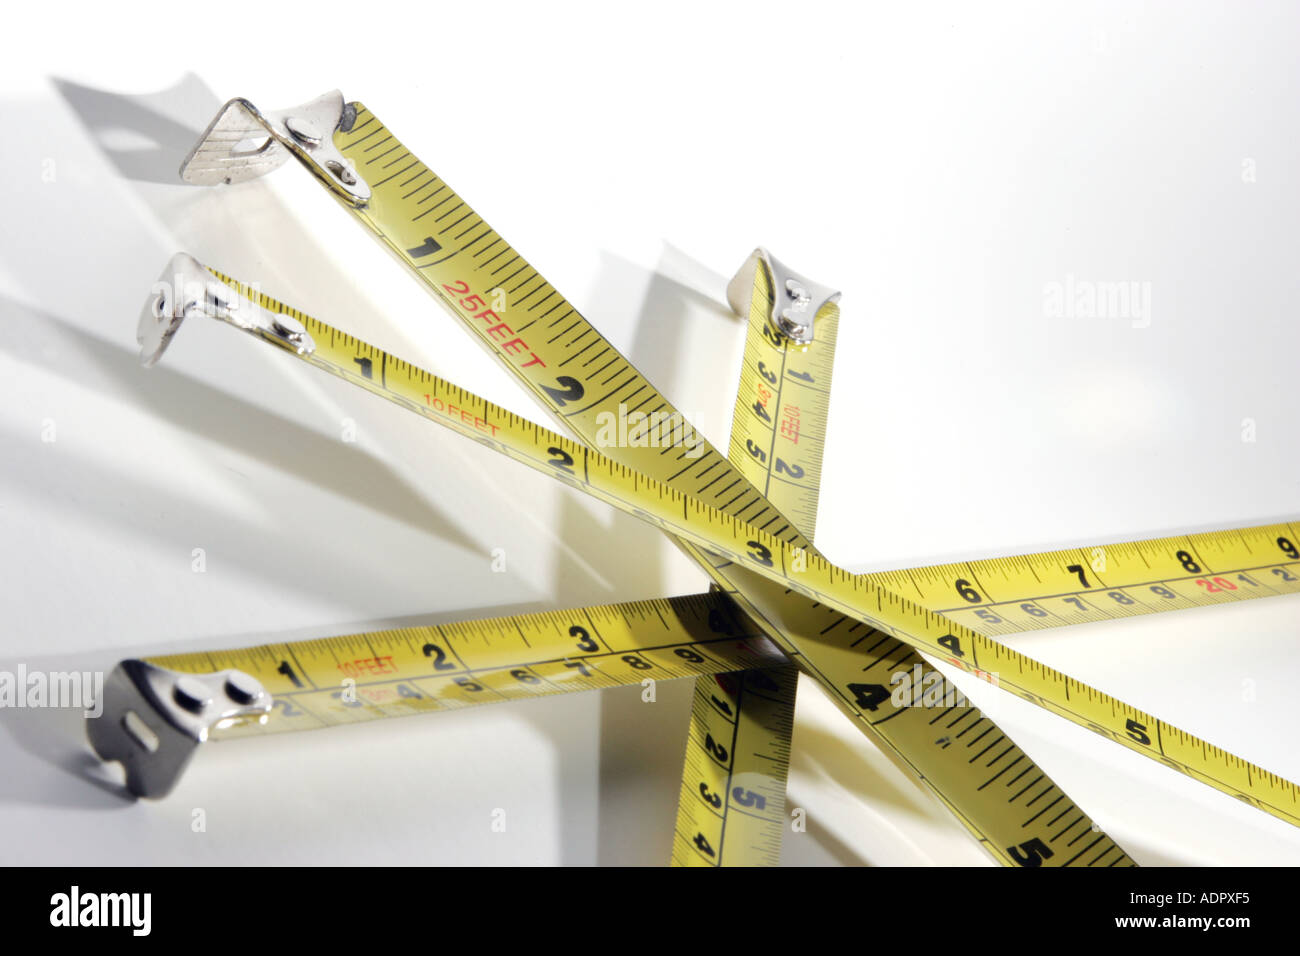 Yellow Steel Tape Measures Criss Crossed Feet Inches Centimetres Metres